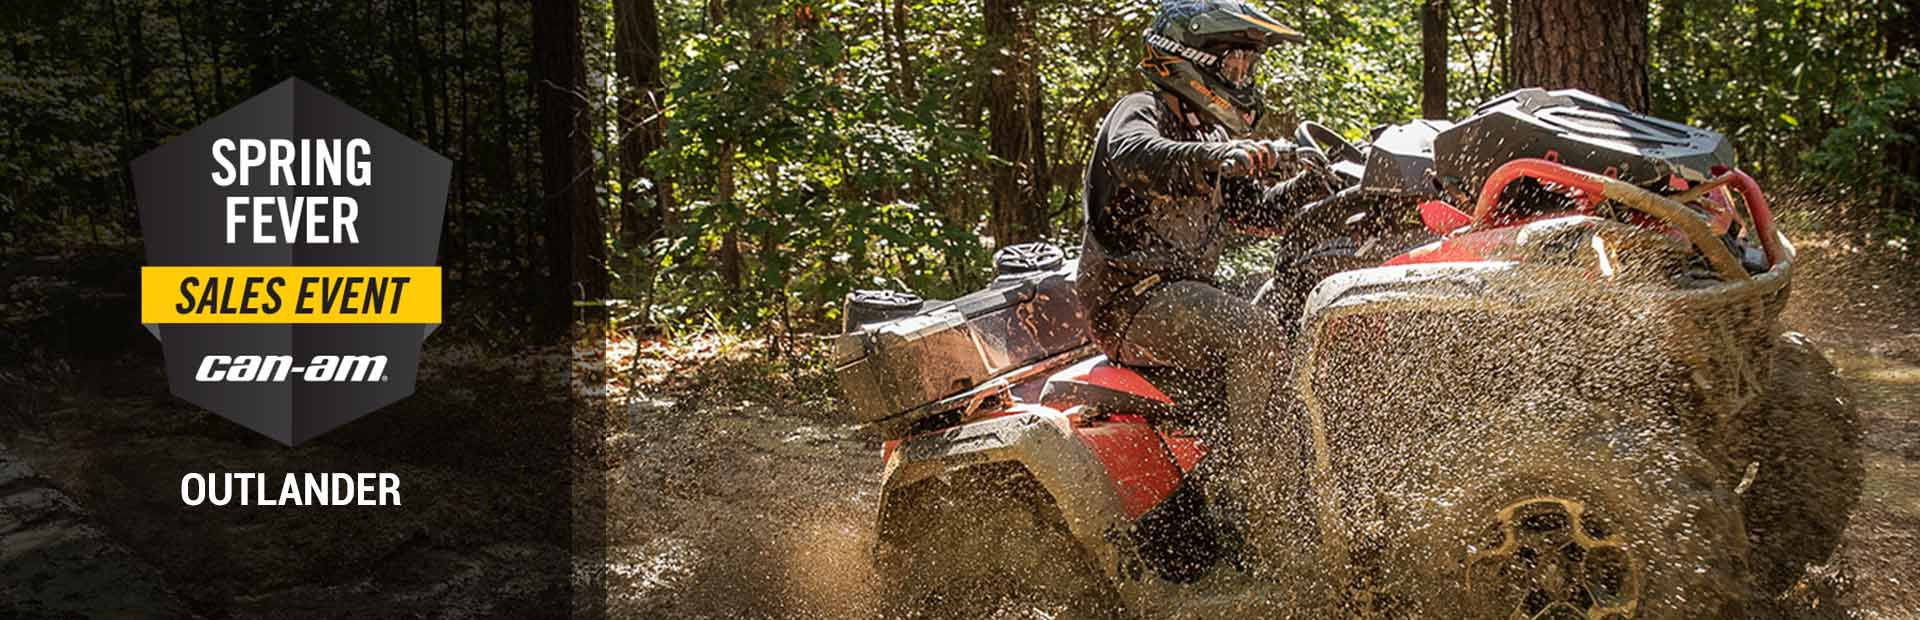 Can-Am: Spring Fever Sales Event (Outlander)